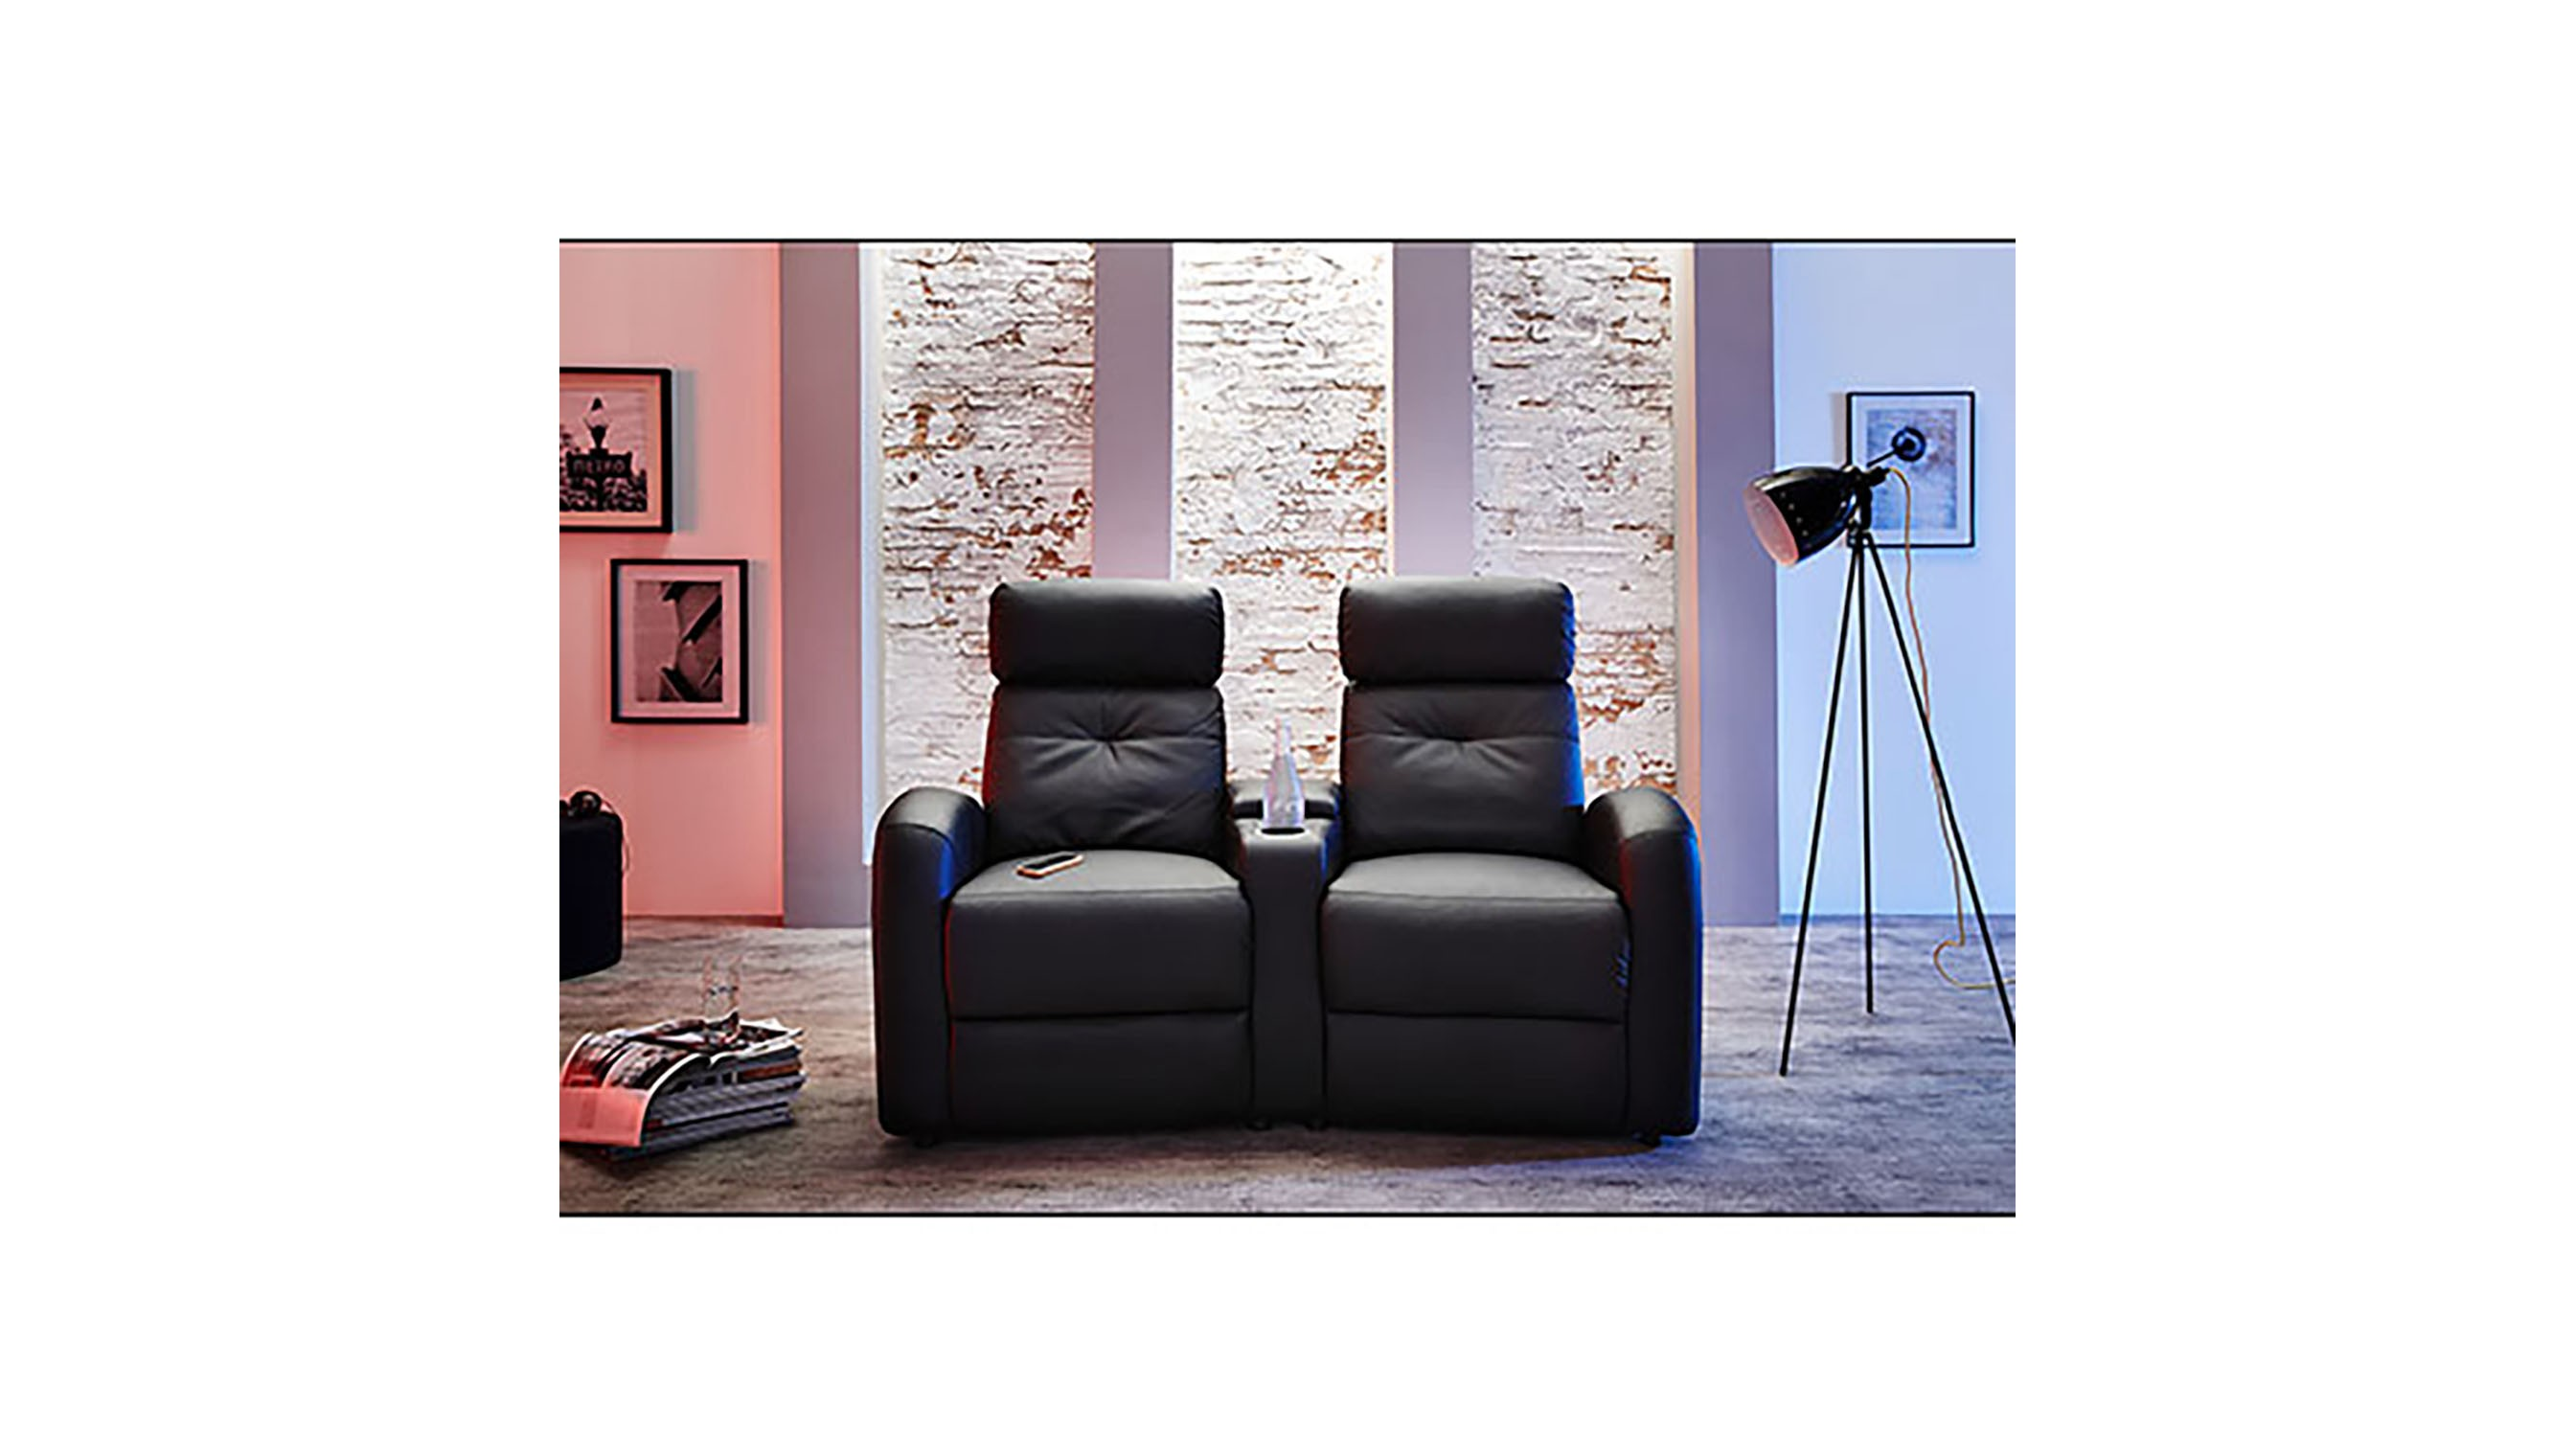 2er sessel houston cinema spilger s sparmaxx. Black Bedroom Furniture Sets. Home Design Ideas